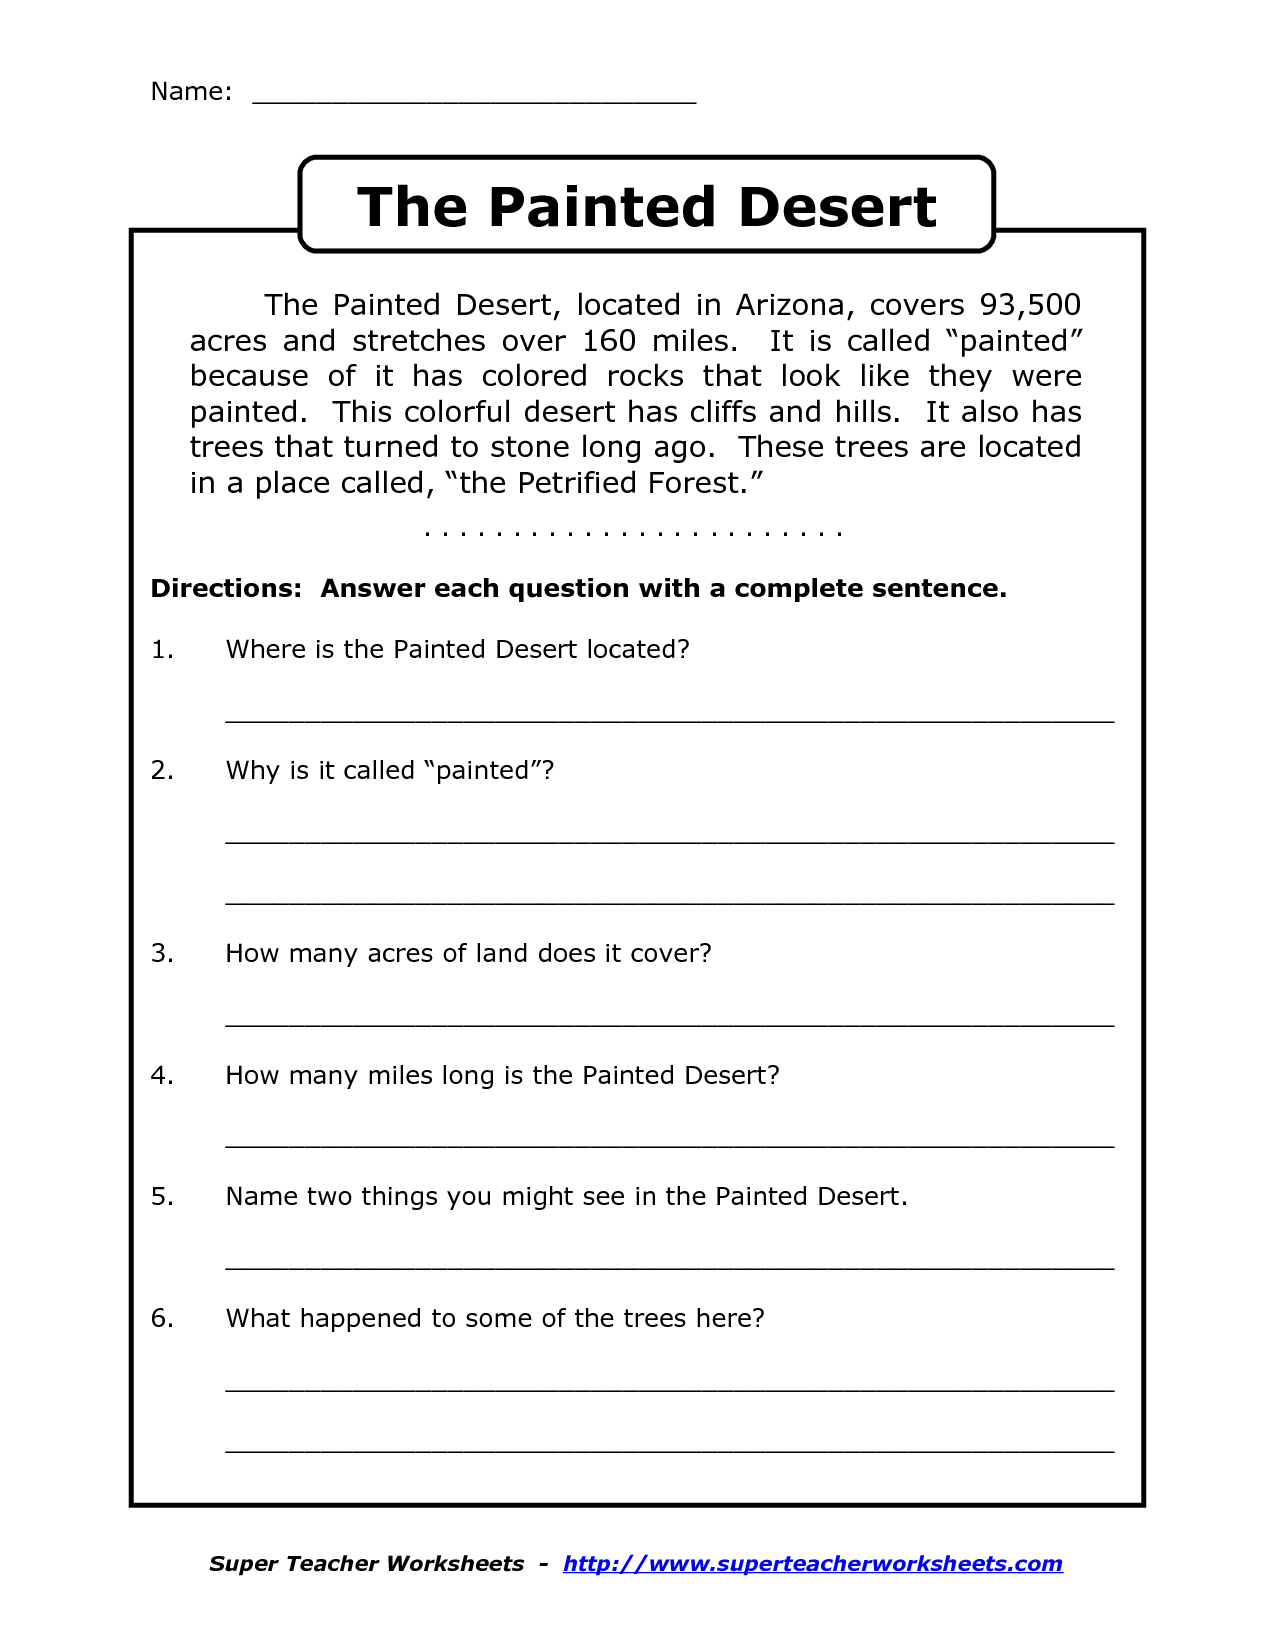 18 Best Images Of Super Teacher Worksheets Reading